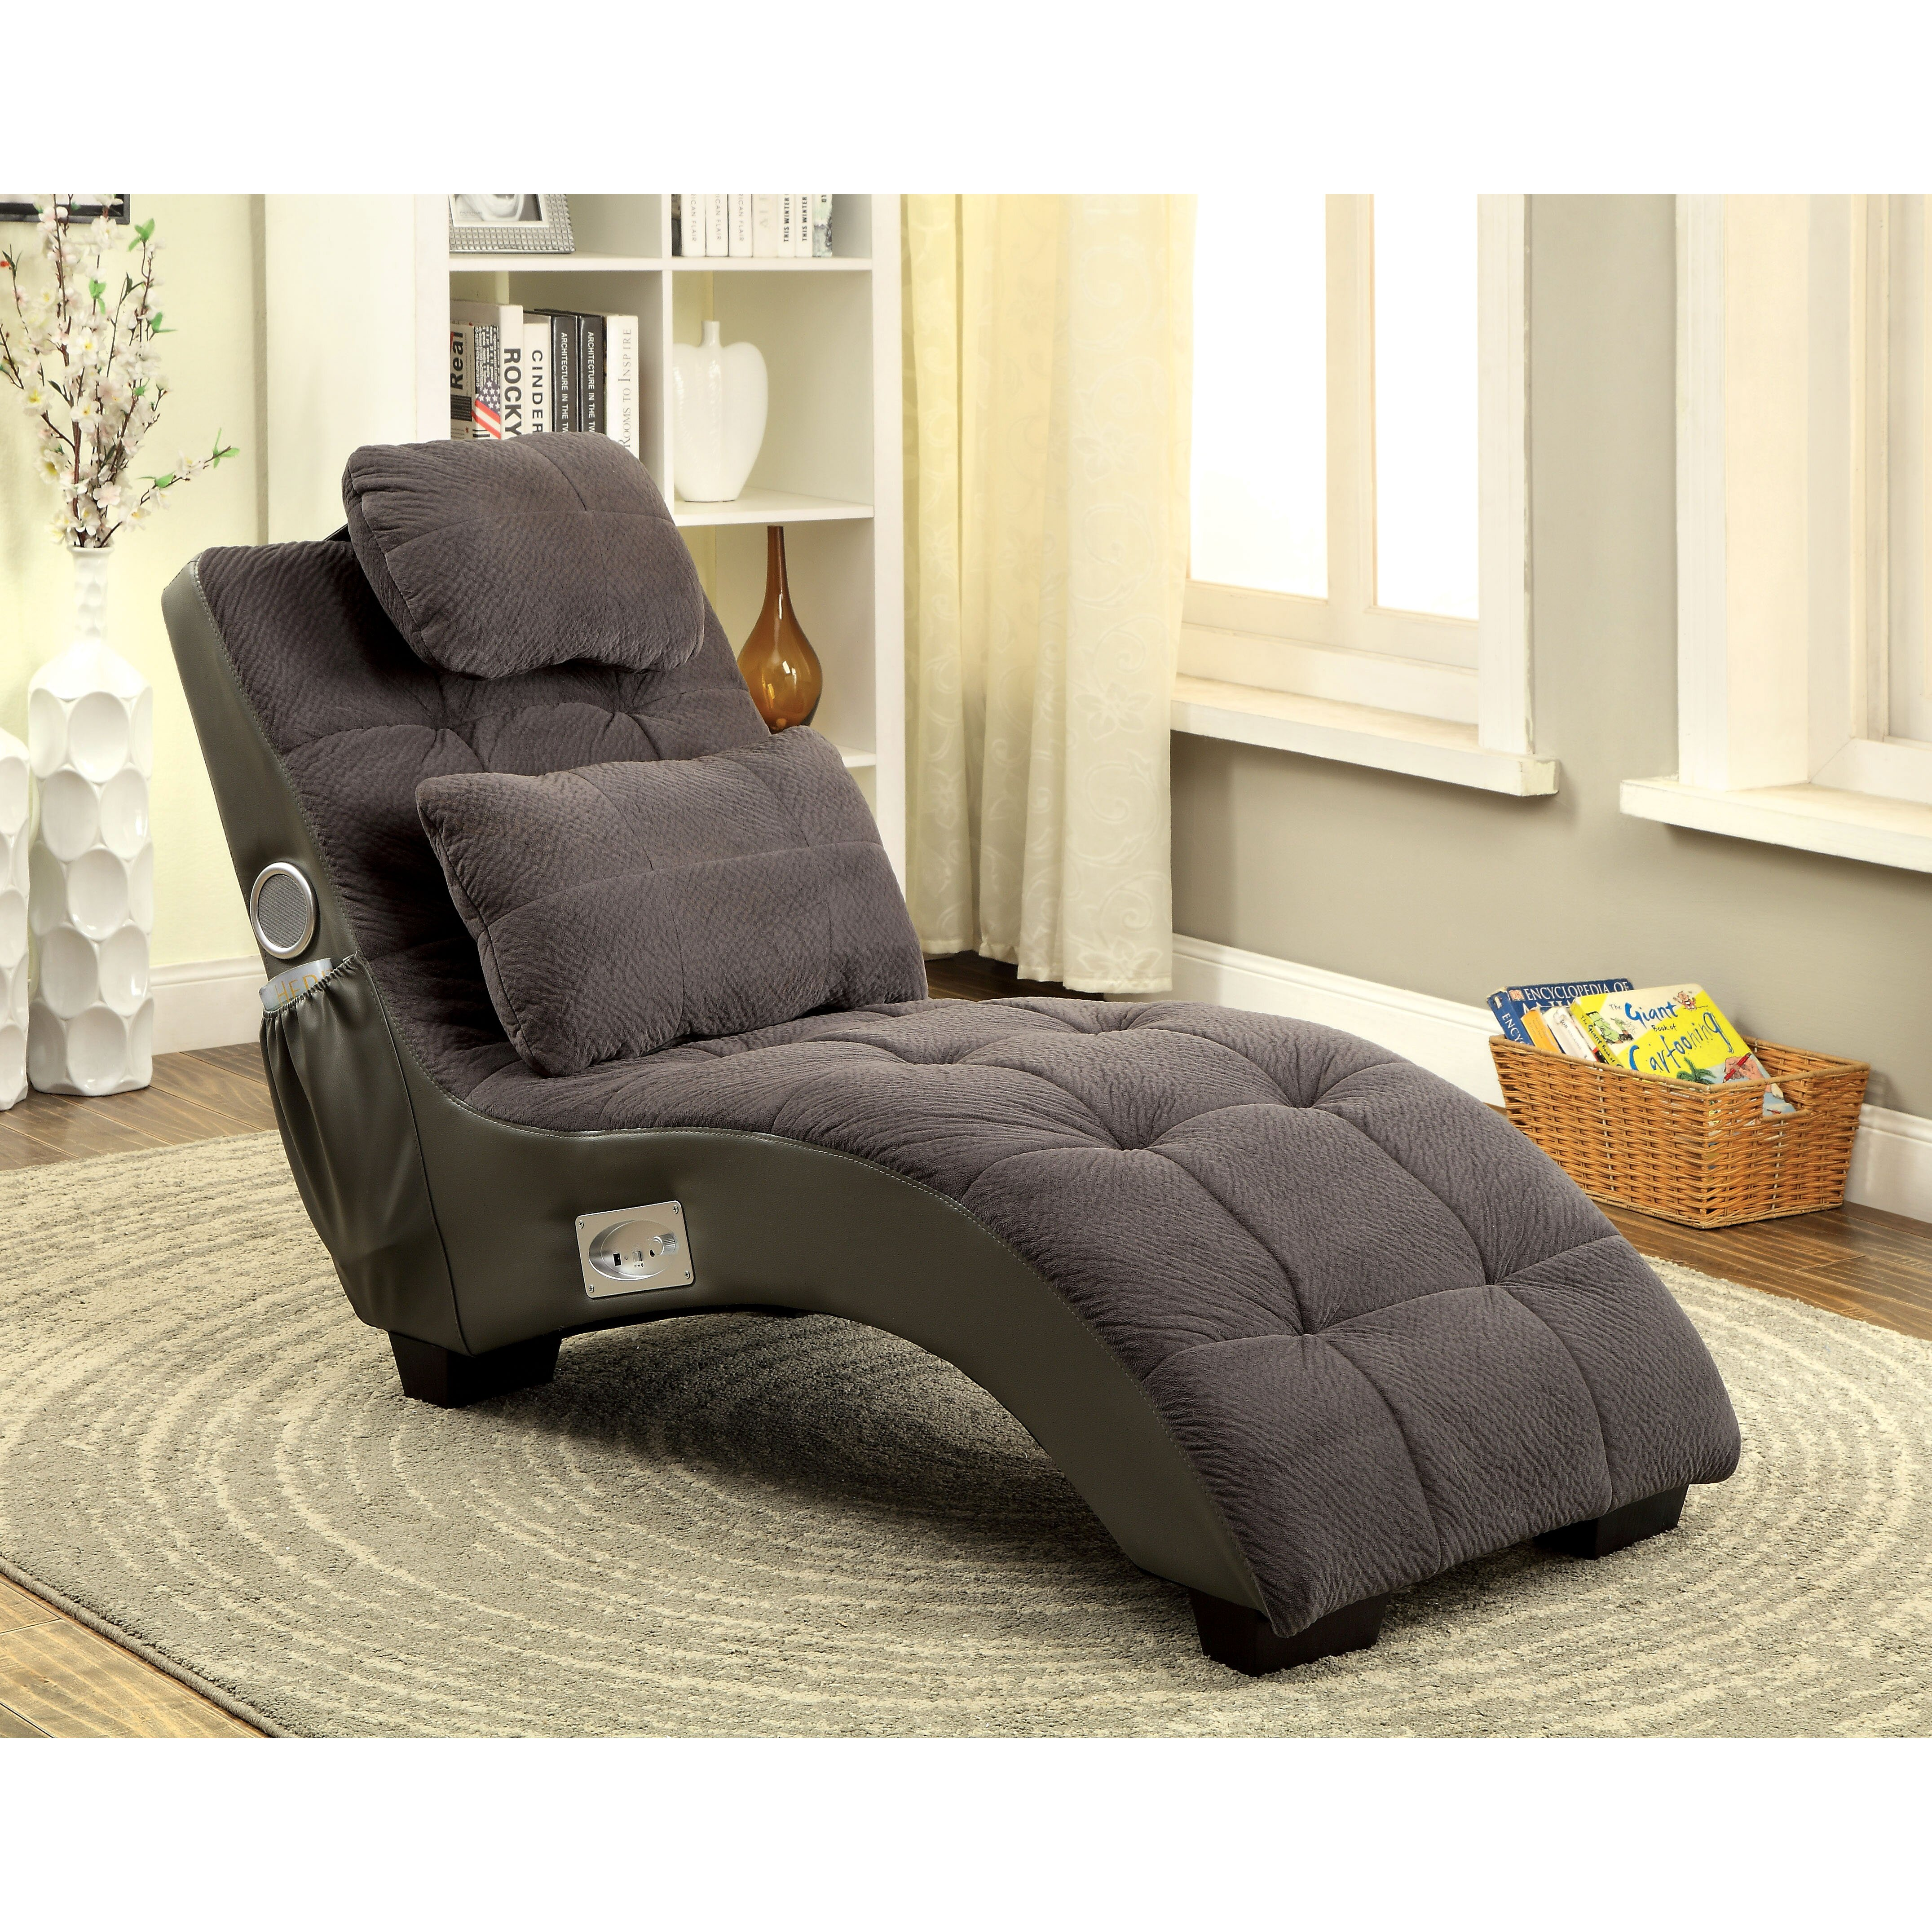 hokku designs adrienne chaise lounge reviews wayfair